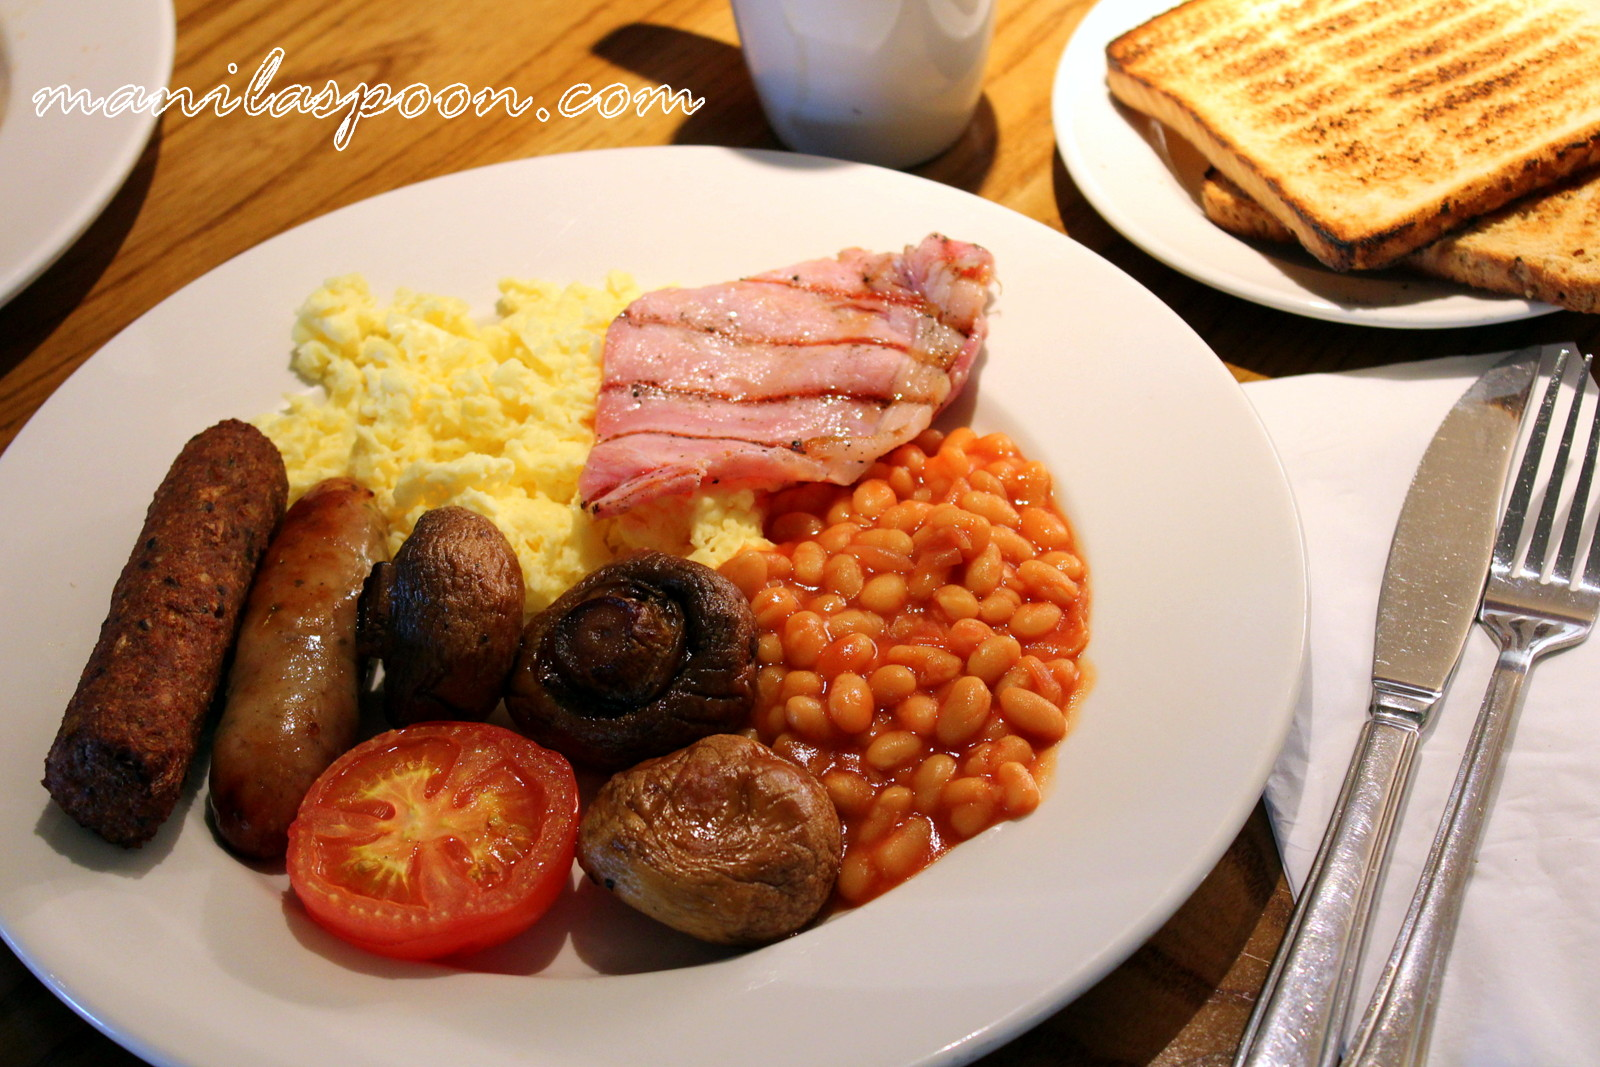 Travels and Travails and Full English Breakfast | Manila Spoon